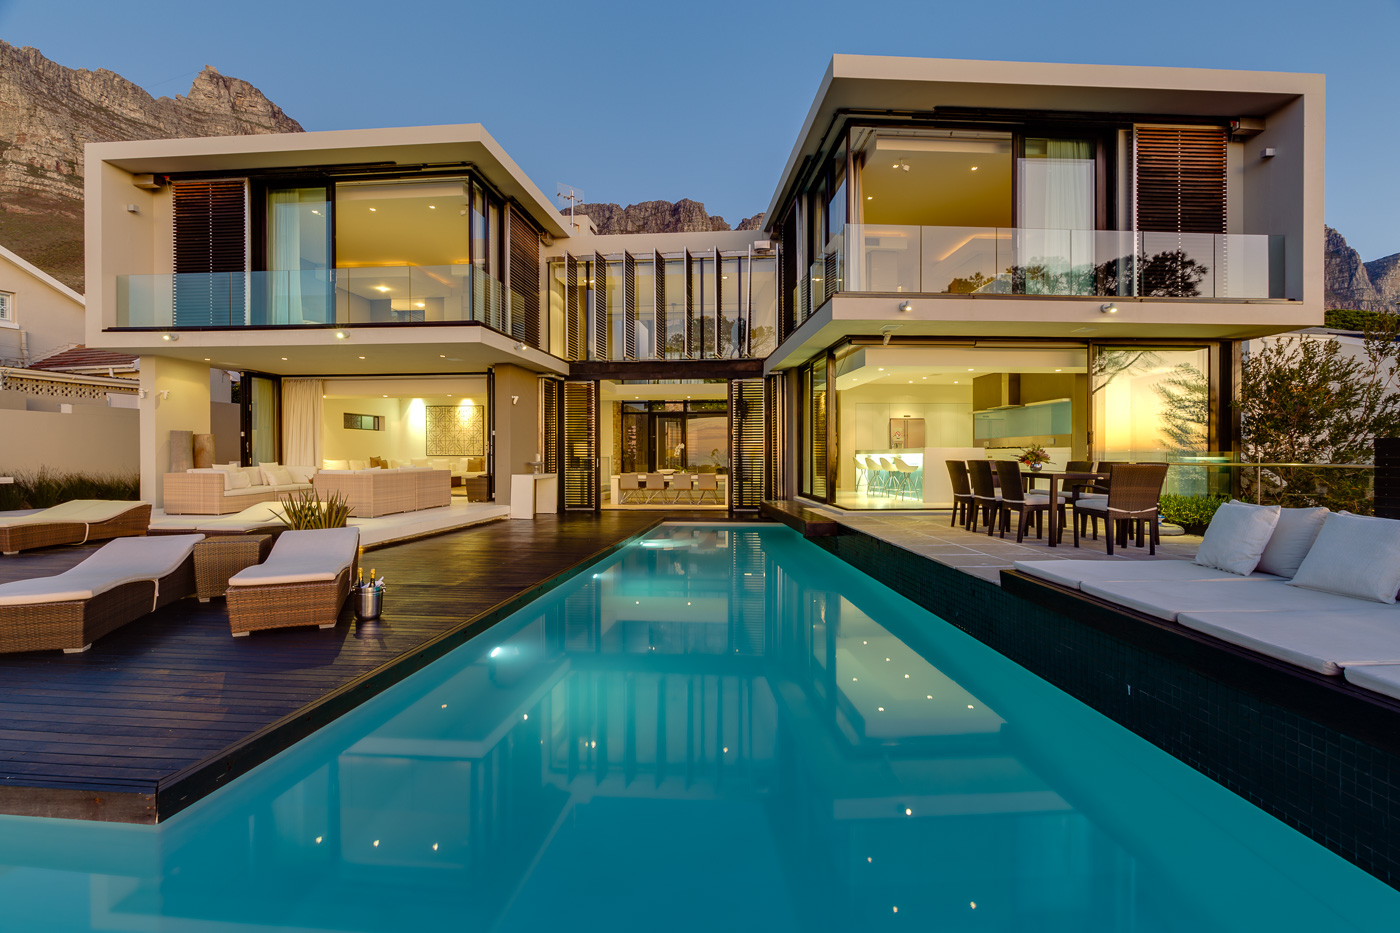 Luxury holiday rentals in cape town south africa capsol for Exclusive house